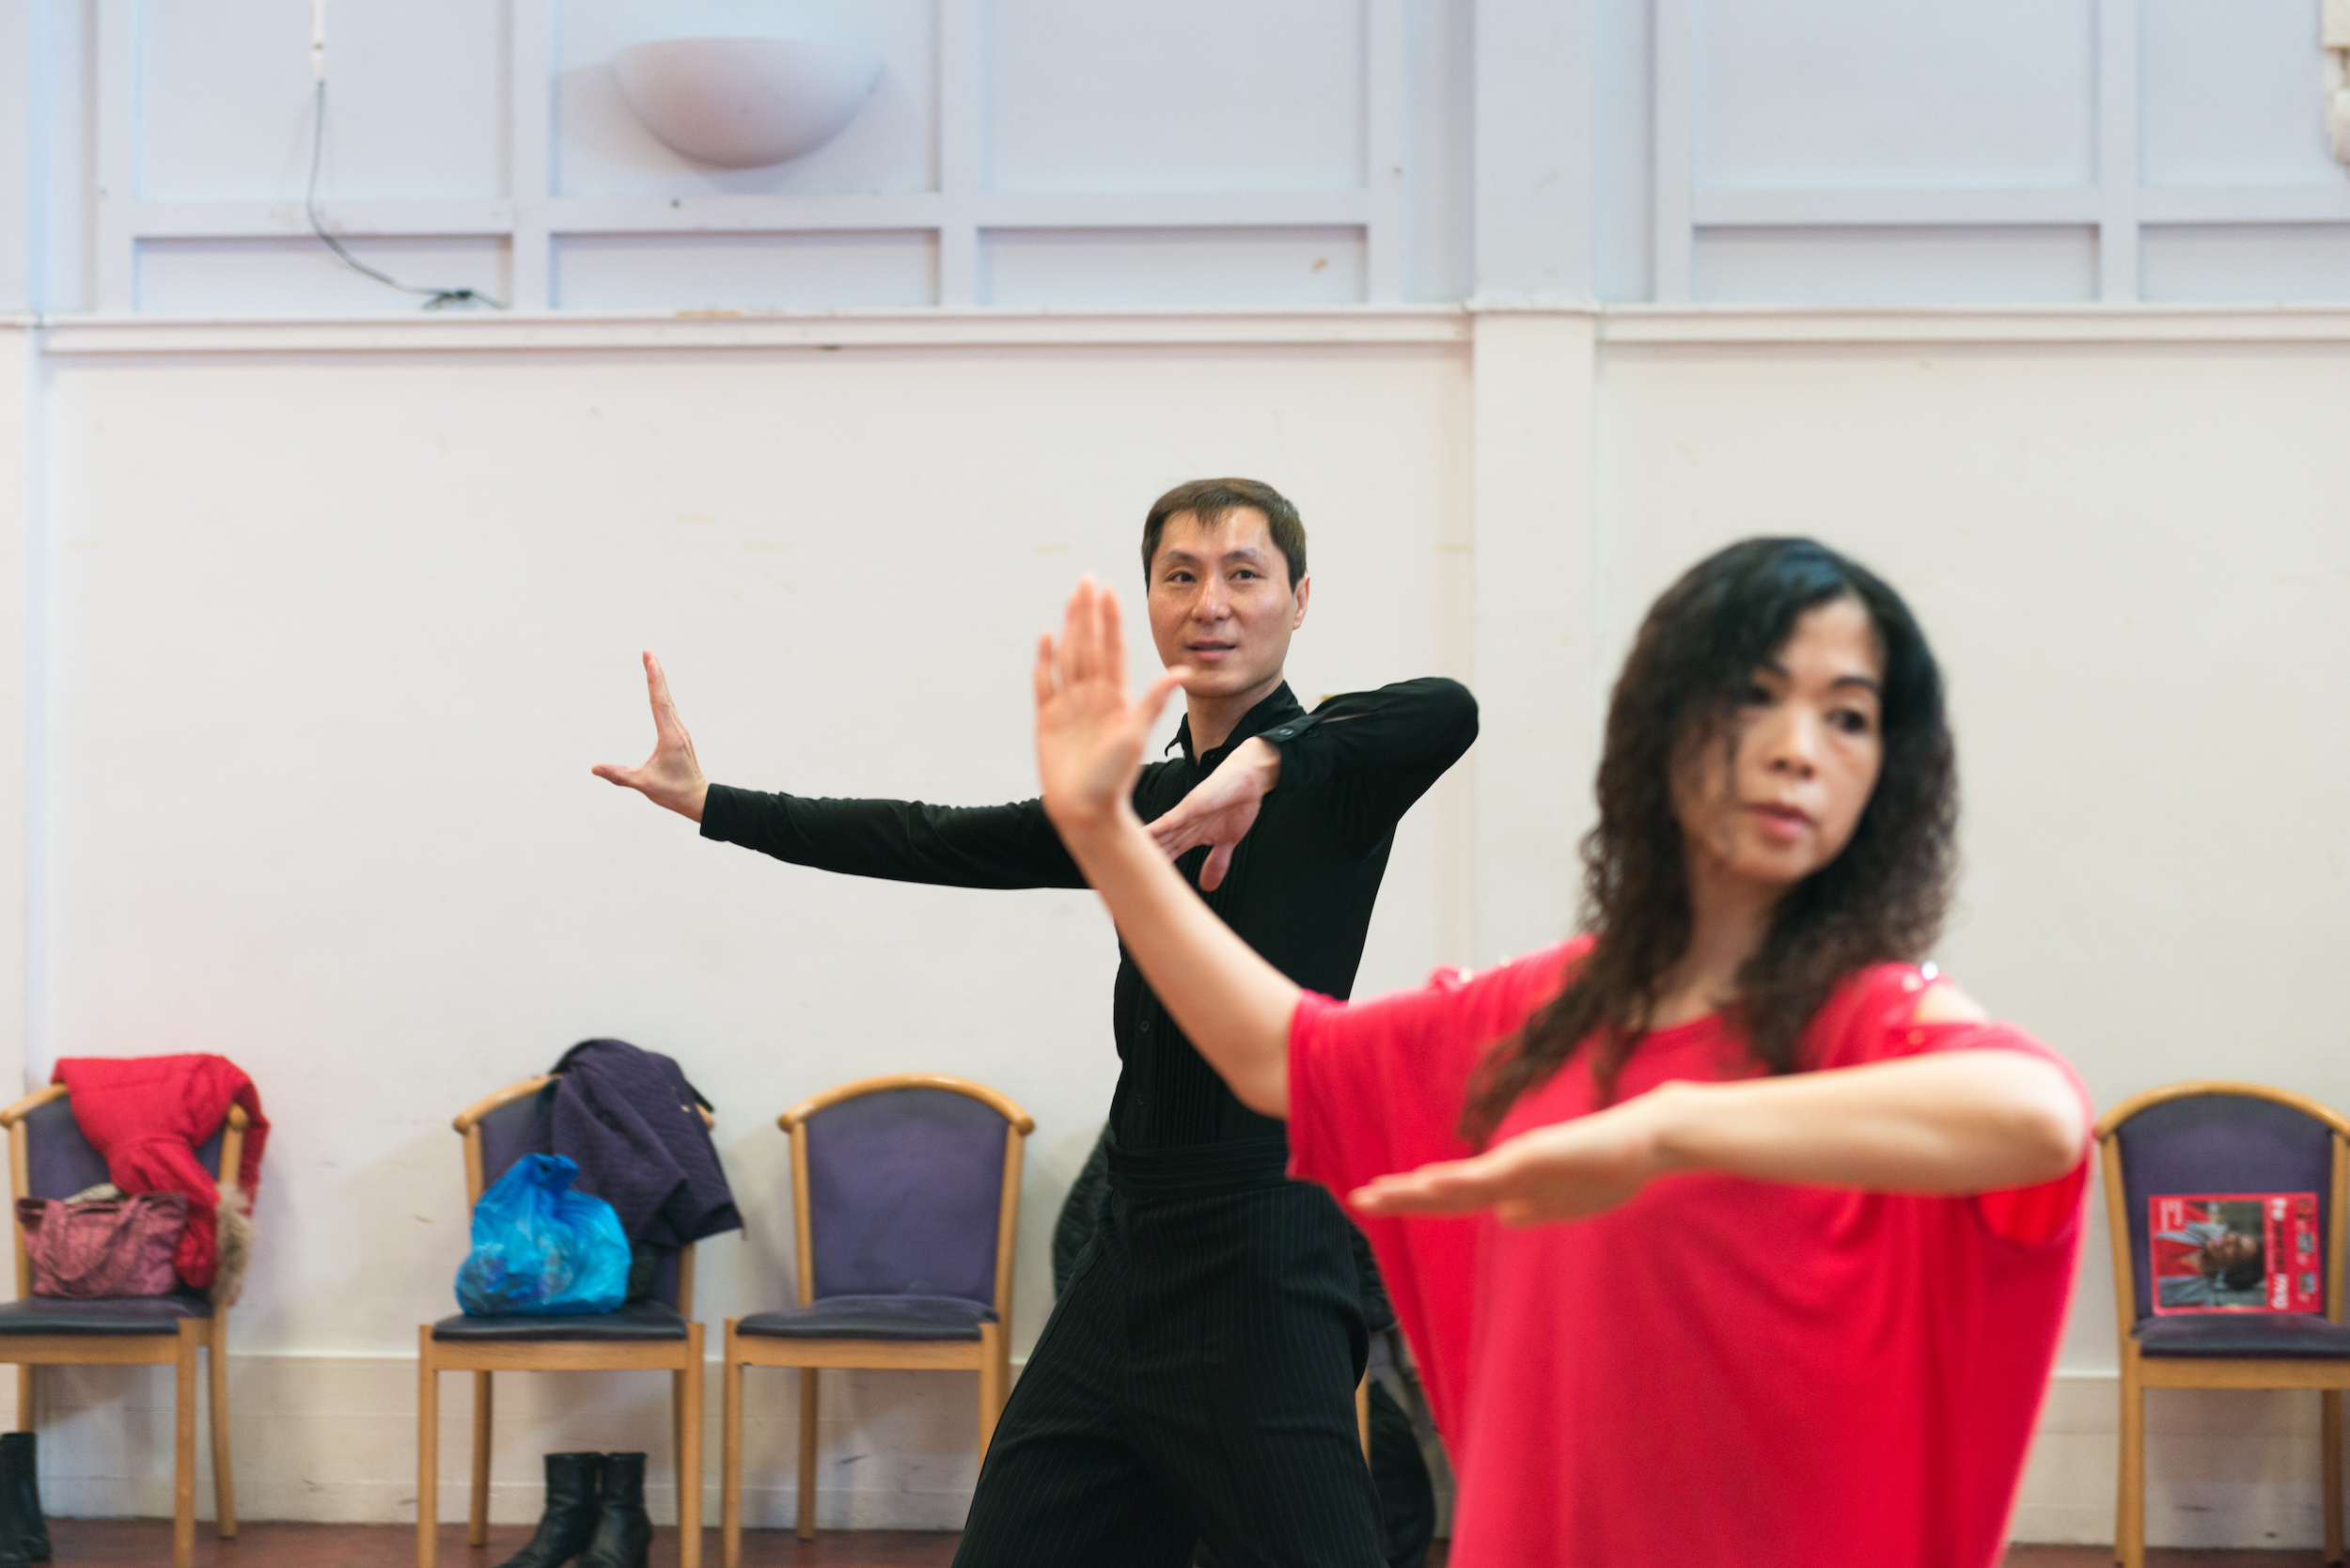 Man and woman dancing in hall